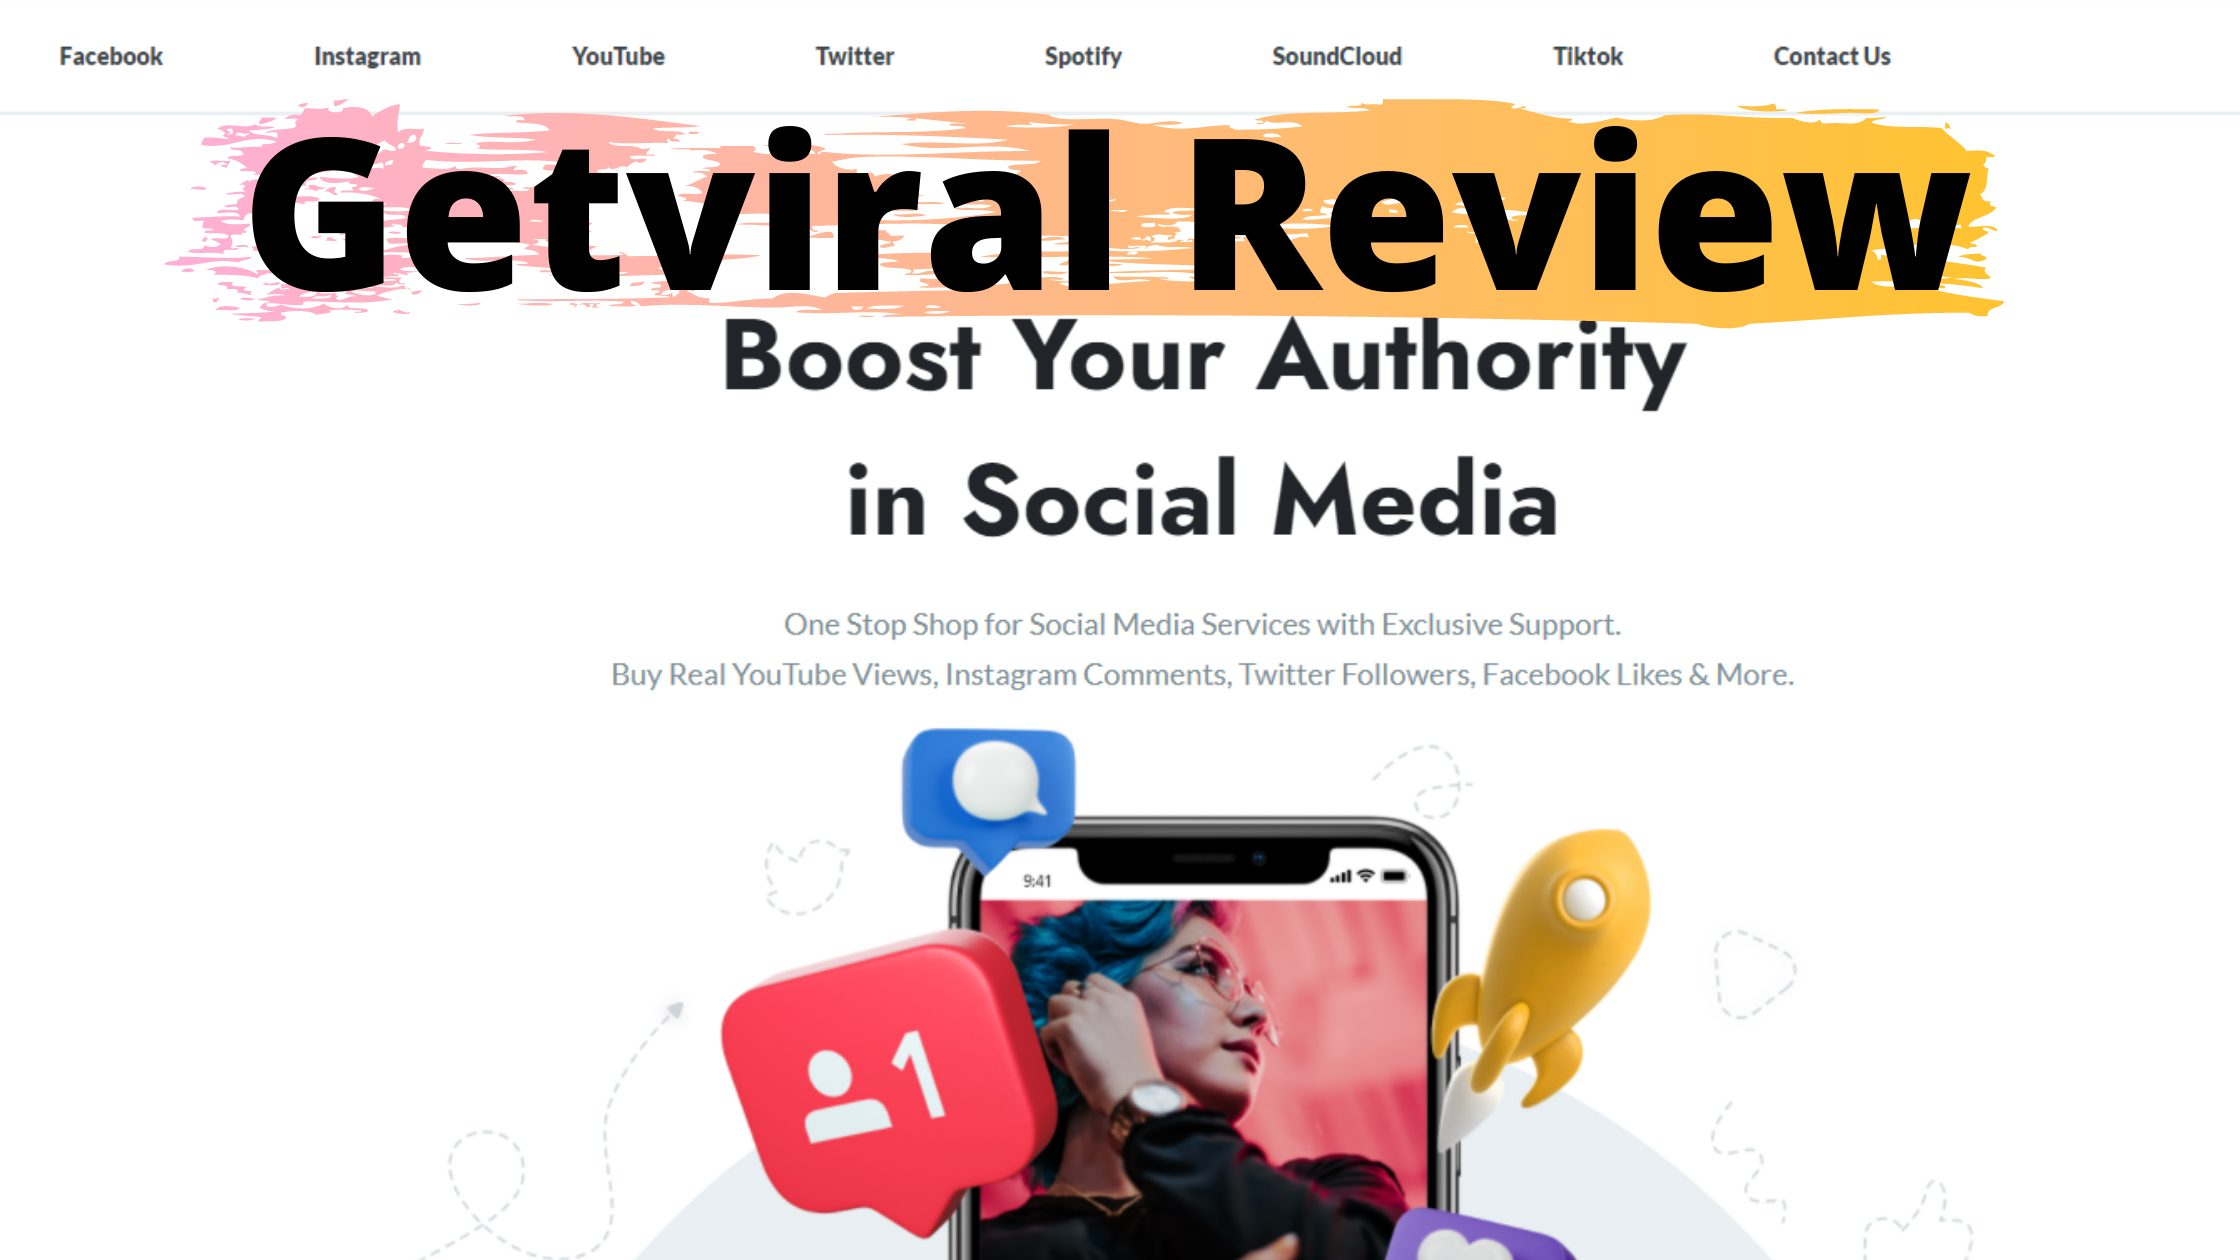 Getviral Review